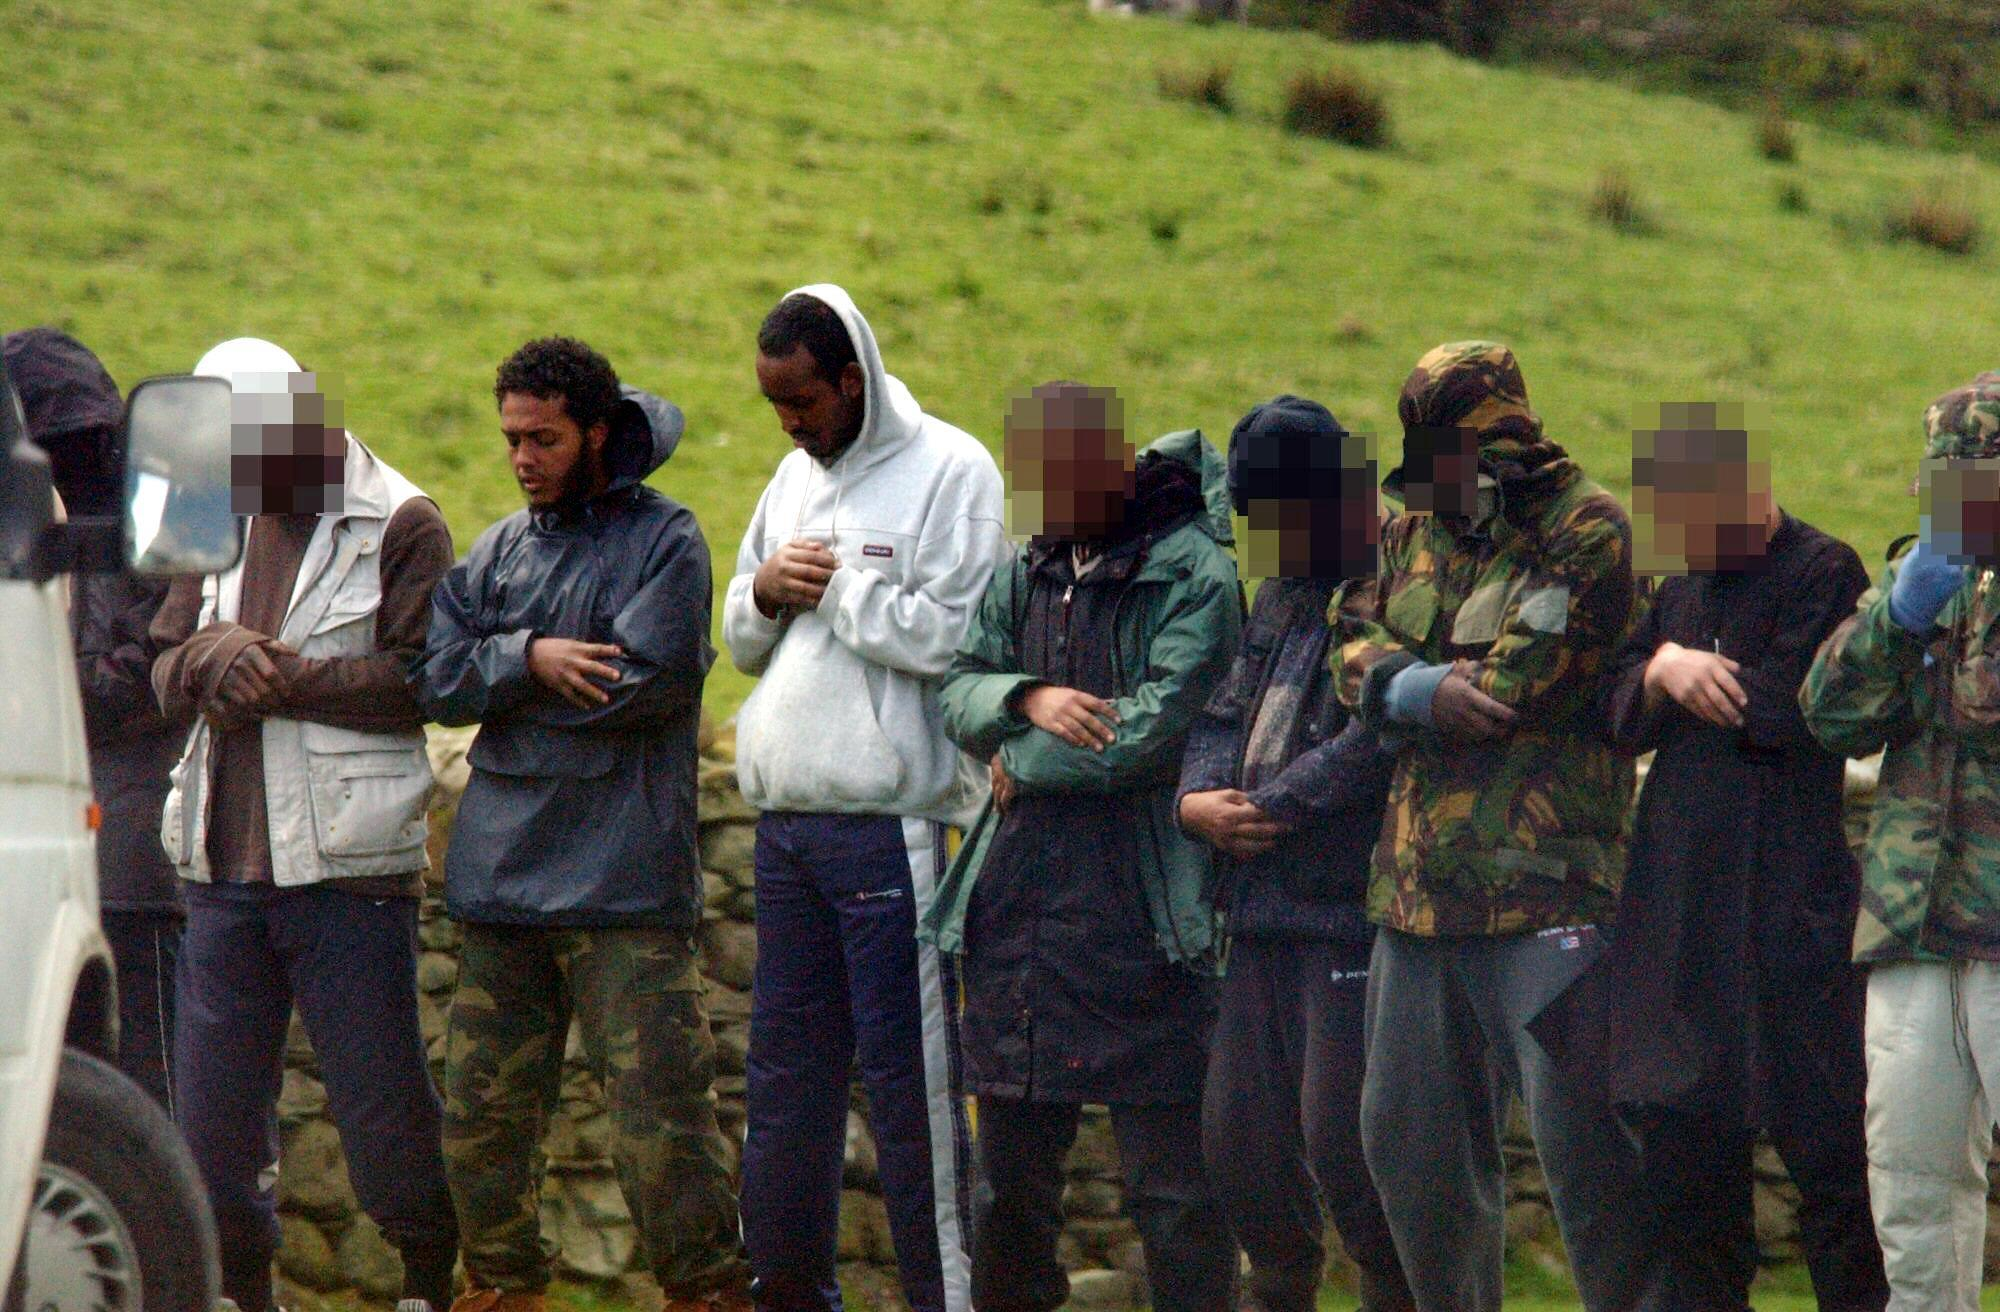 Suspects among the group photographed by police in Great Langdale